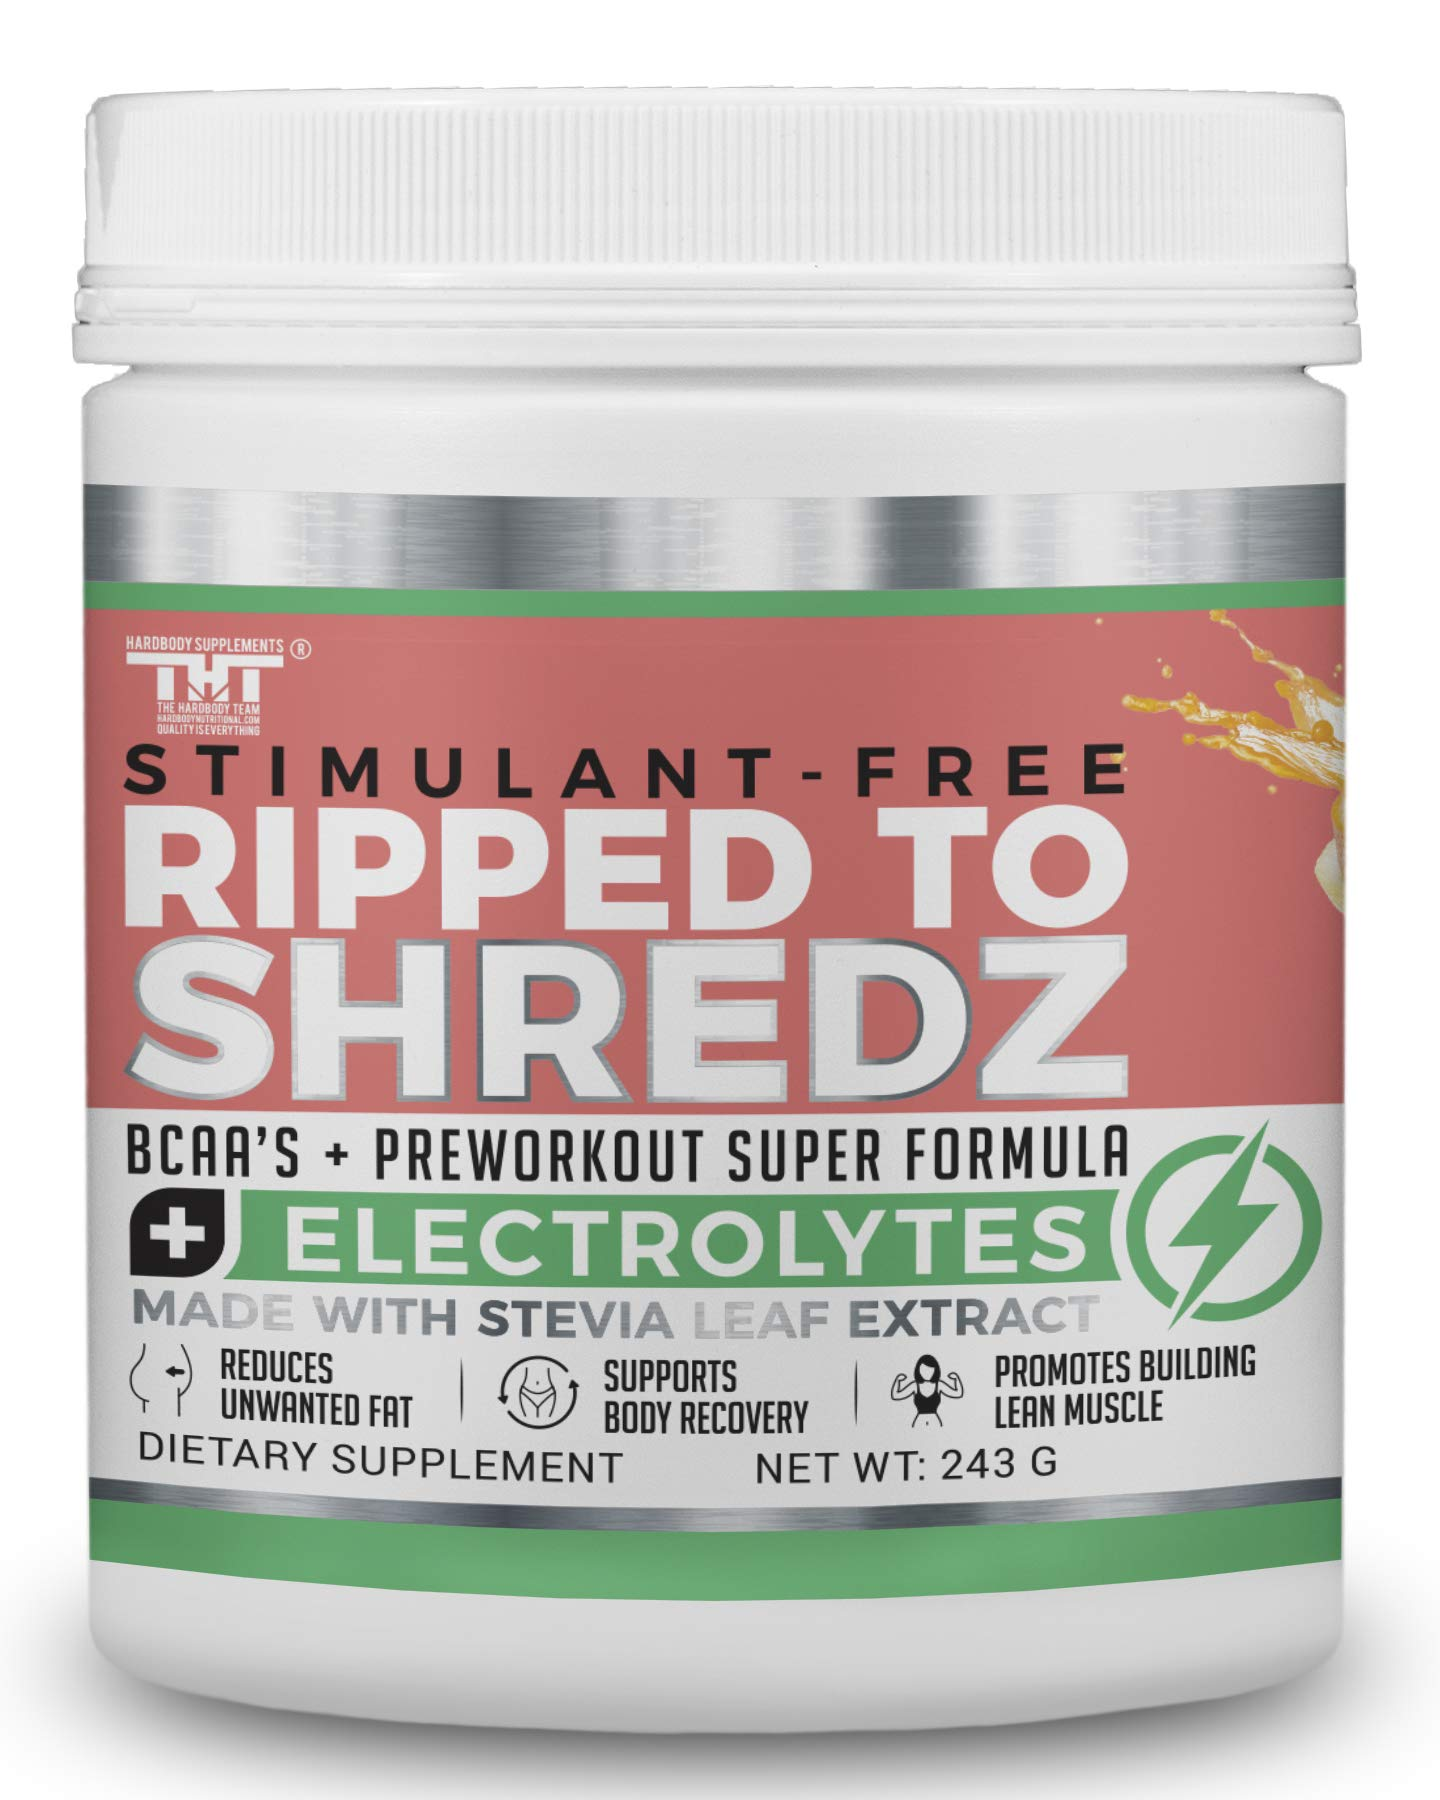 Ripped to Shredz Preworkout Drink for Hardcore Improvement &  Performance.Boosts Energy,Motivation,